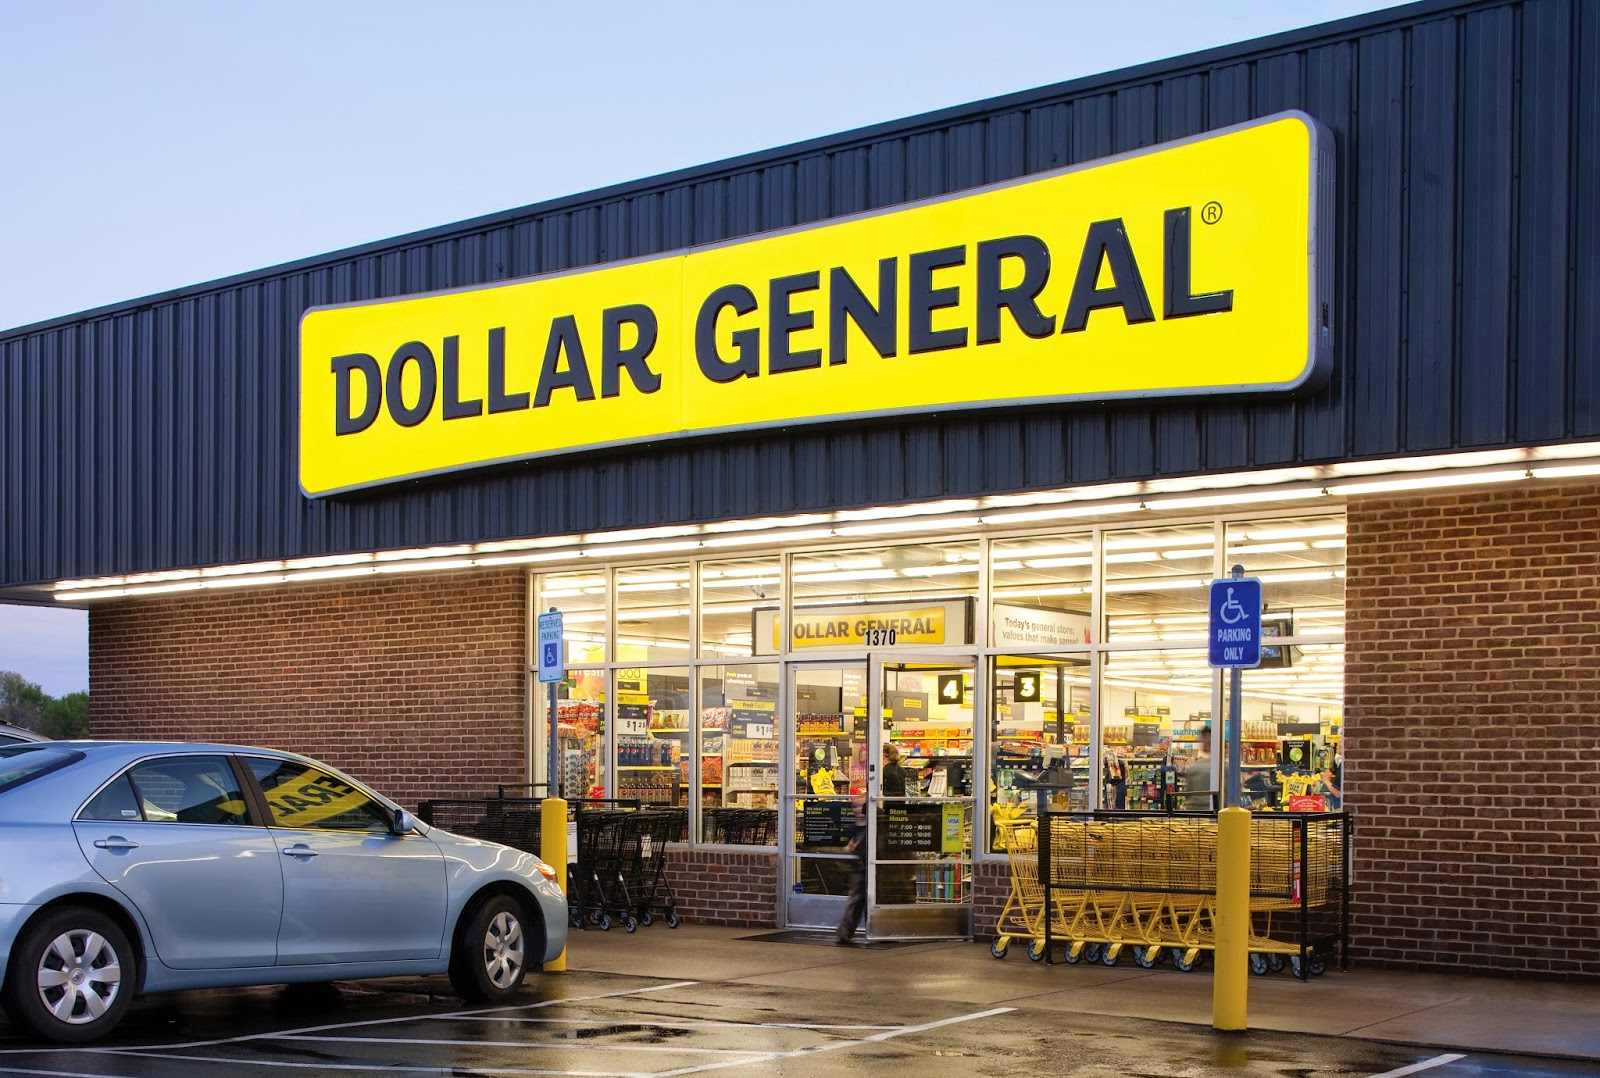 In Minnesota, Dollar General opened 42 stores in the past two years, bringing its total to Family Dollar opened 16 stores in Minnesota since September , for a total of